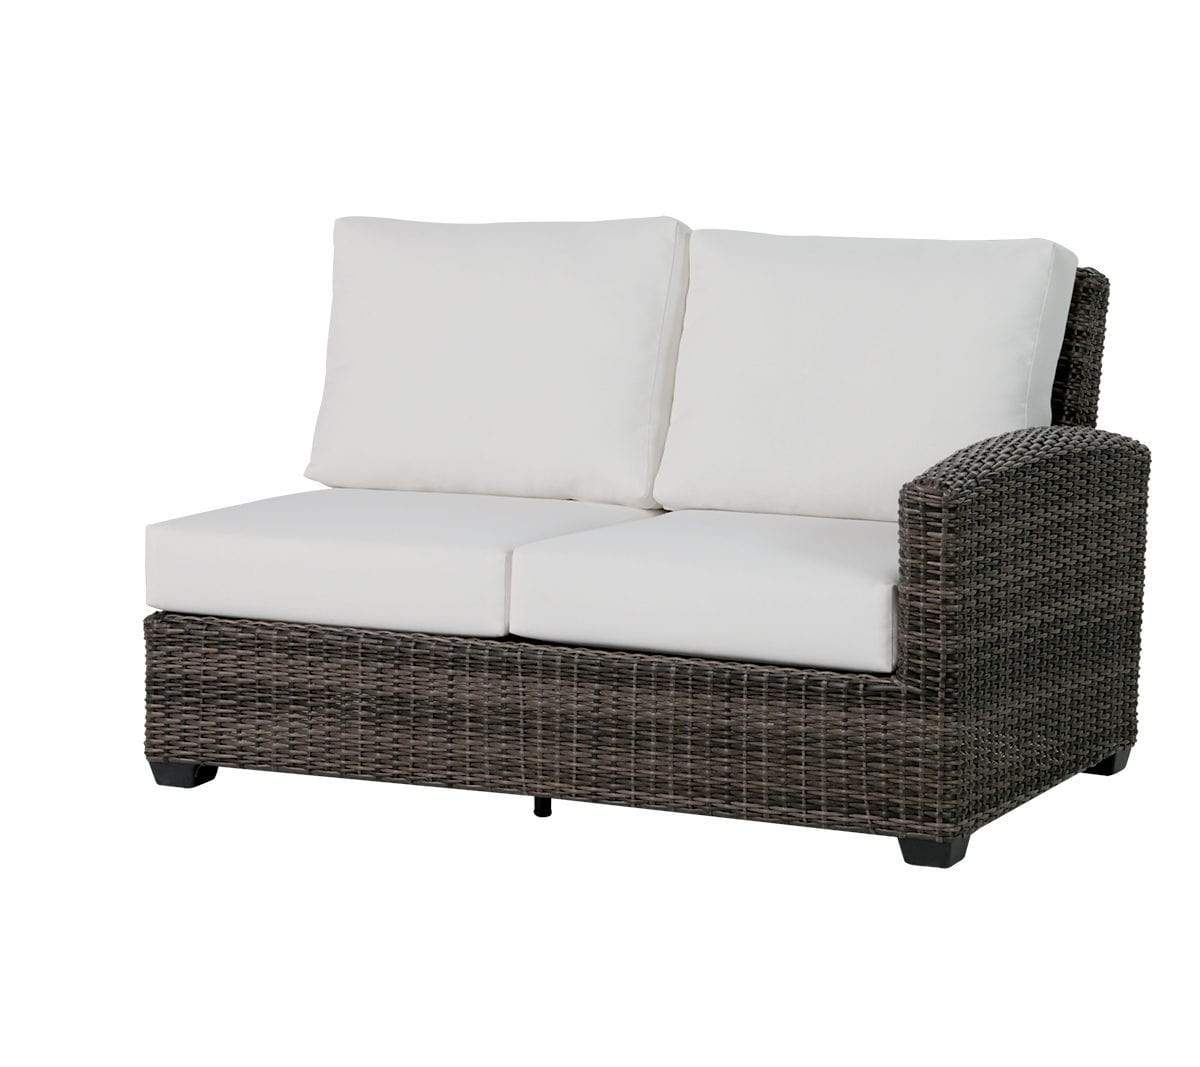 Ratana wicker Coral Gables 2 Seat Right